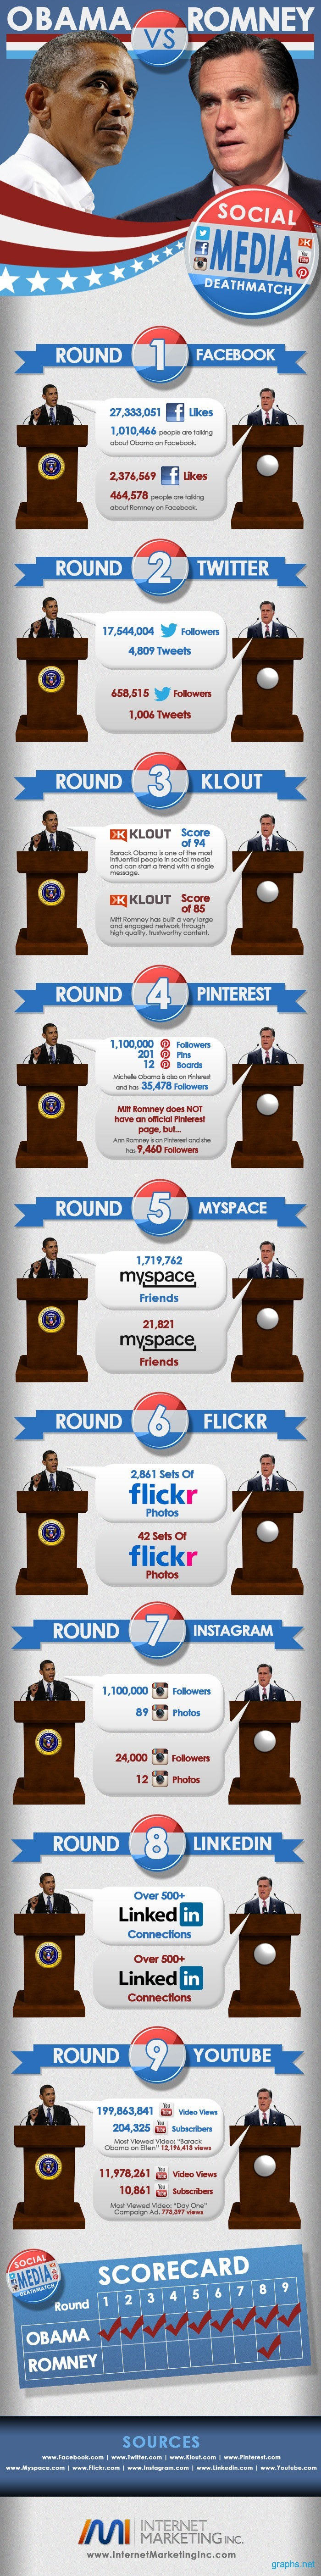 Obama vs. Romney Social Media Deathmatch